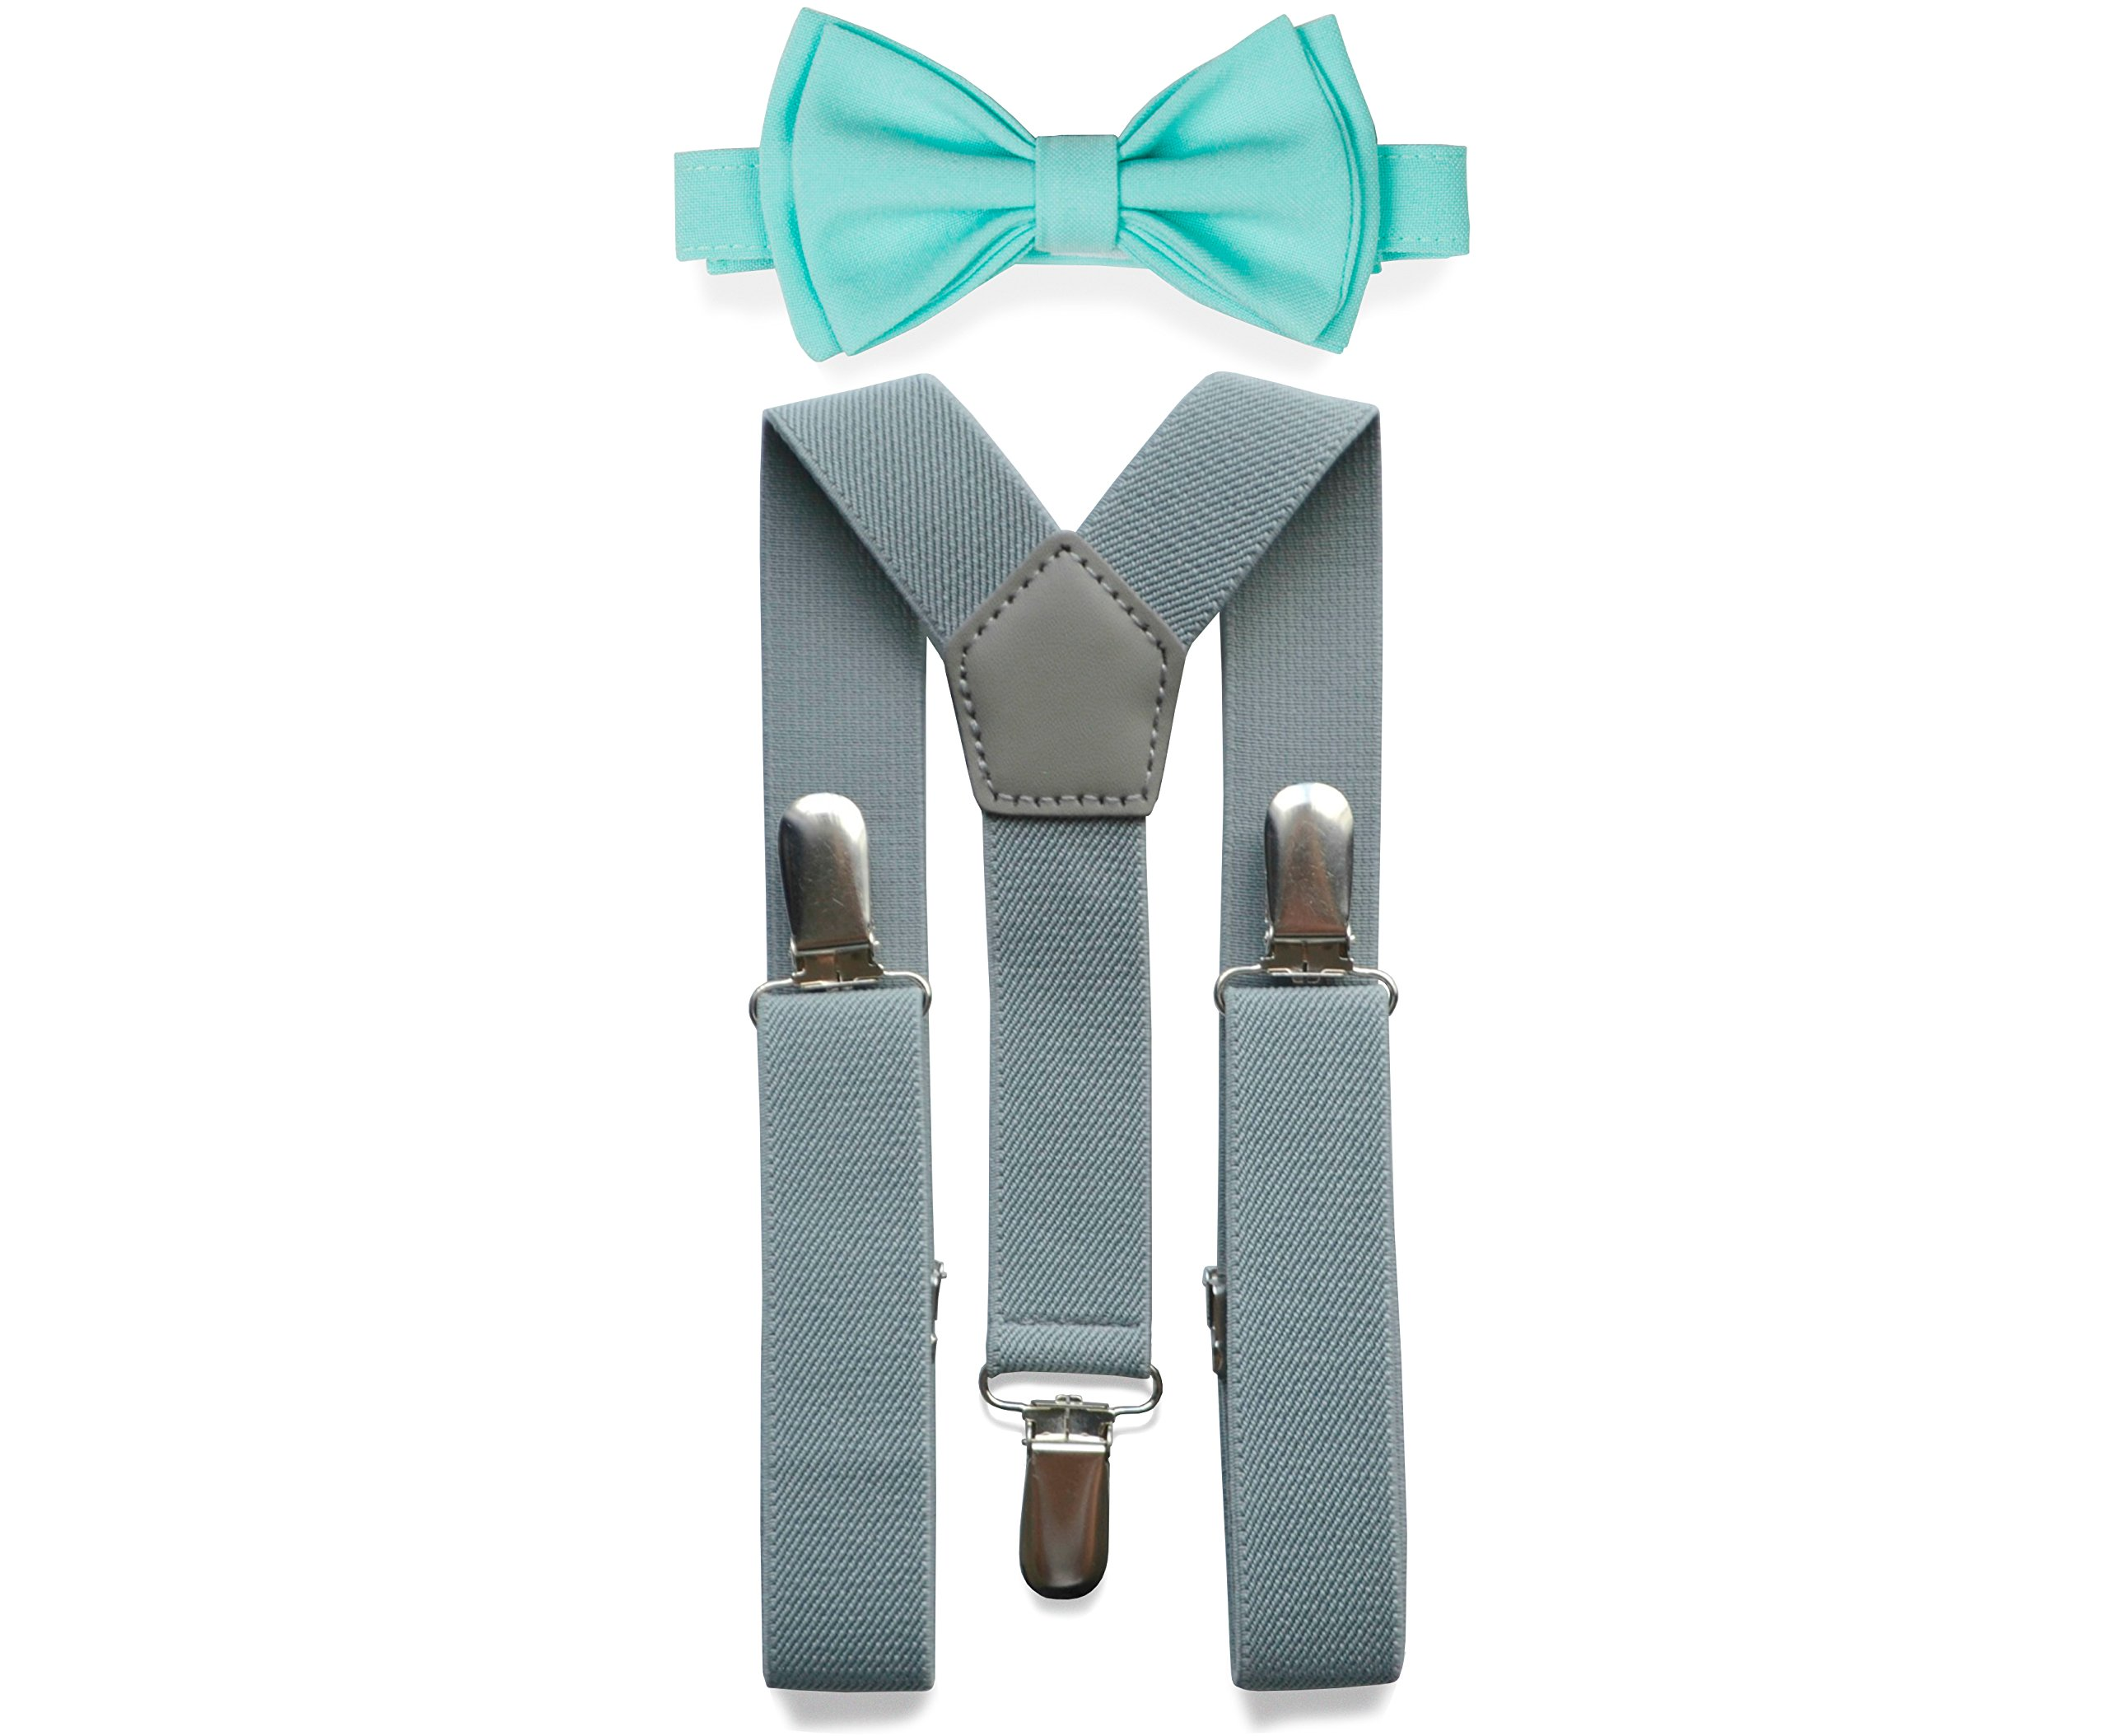 Light Grey Suspenders Bow Tie Set for Baby Toddler Boy Teen Men (1. Baby (6-18 mo), Light Grey Suspenders, Aqua Bow Tie)